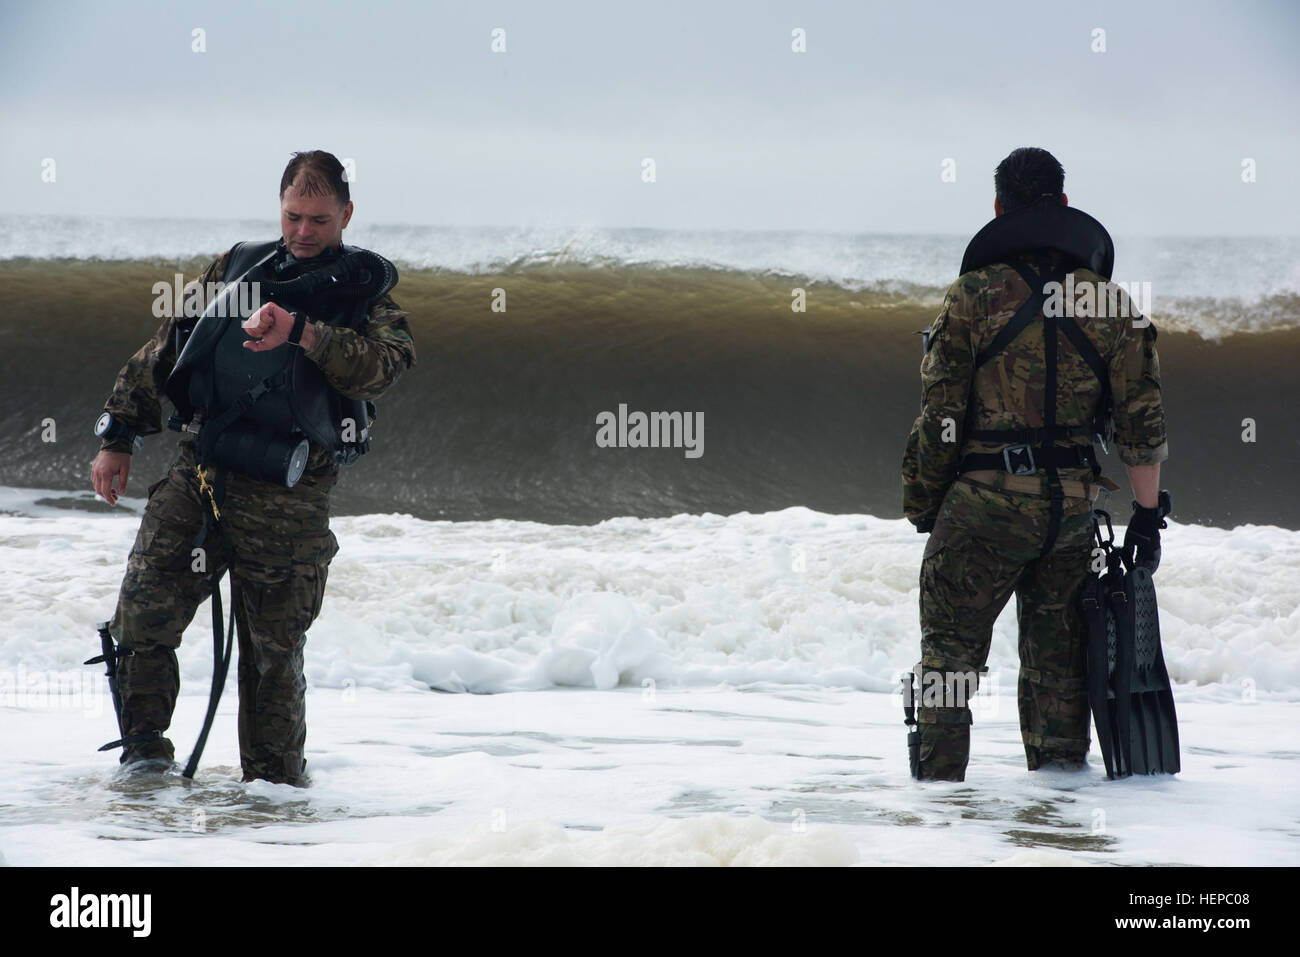 Members of the Army National Guard's 20th Special Forces Group (Airborne) prepare to enter the water at Naval - Stock Image